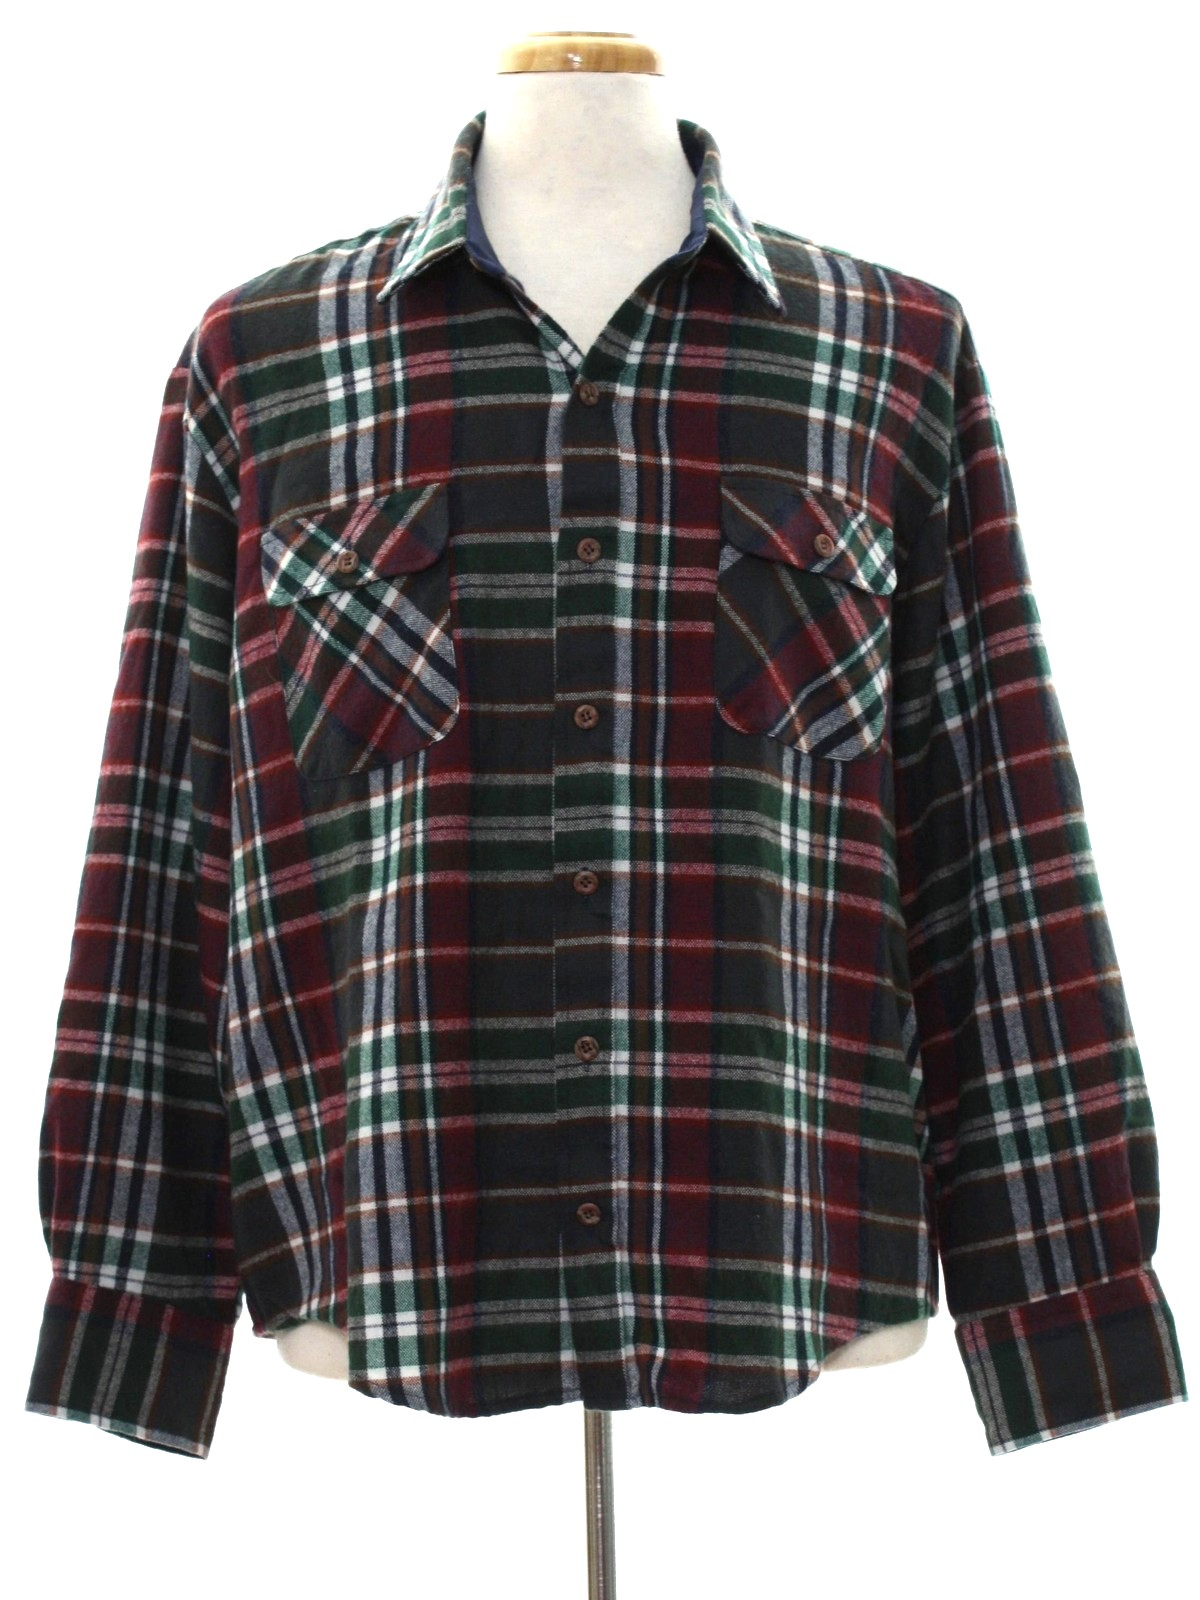 Arrow sportswear eighties vintage shirt 80s arrow for Navy blue and red flannel shirt